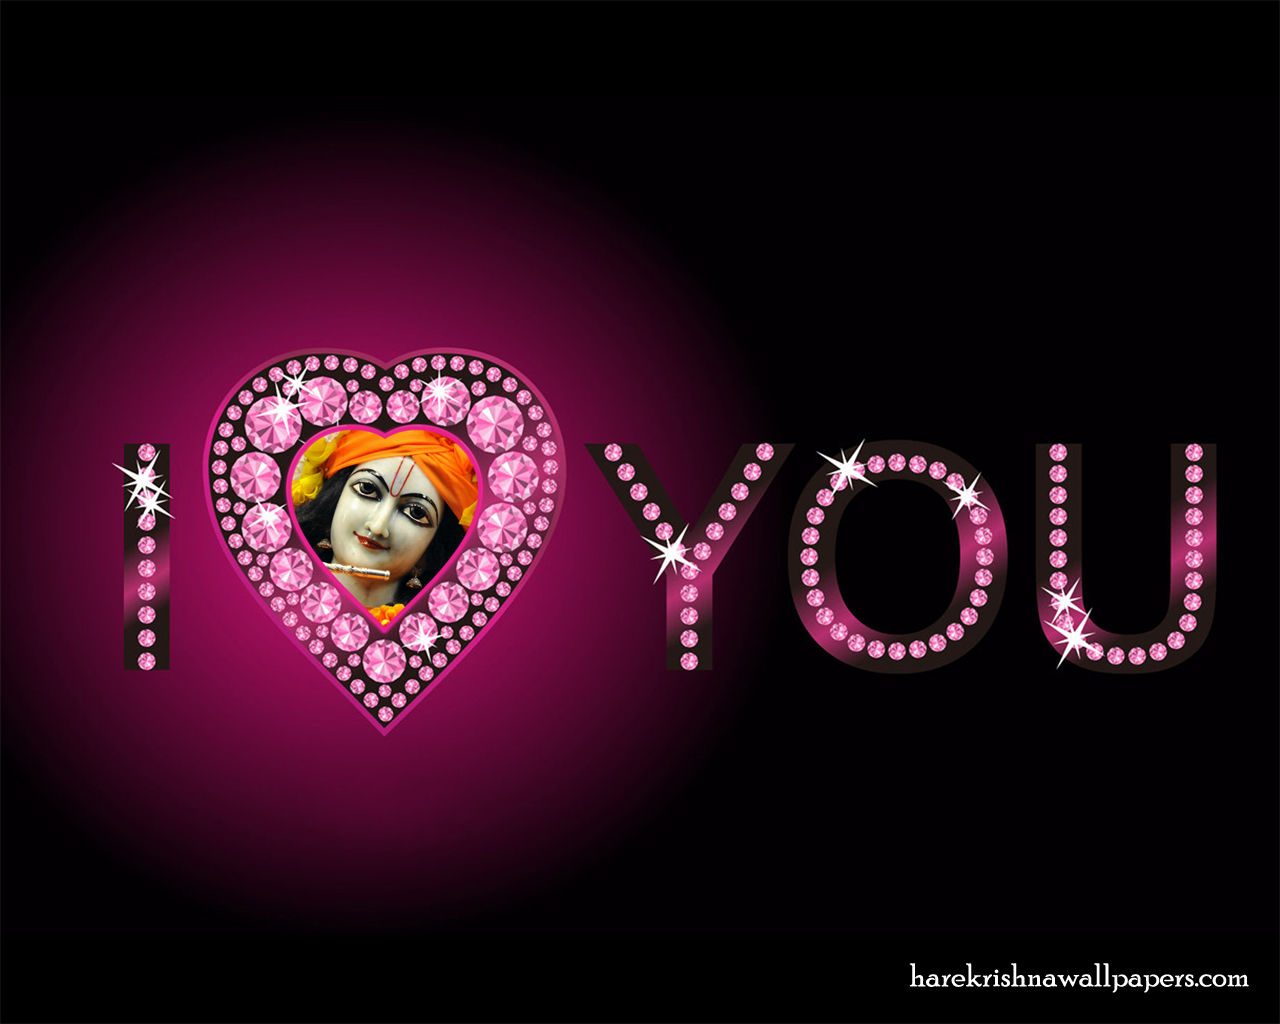 I Love You Gopinath Wallpaper (001) Size 1280x1024 Download